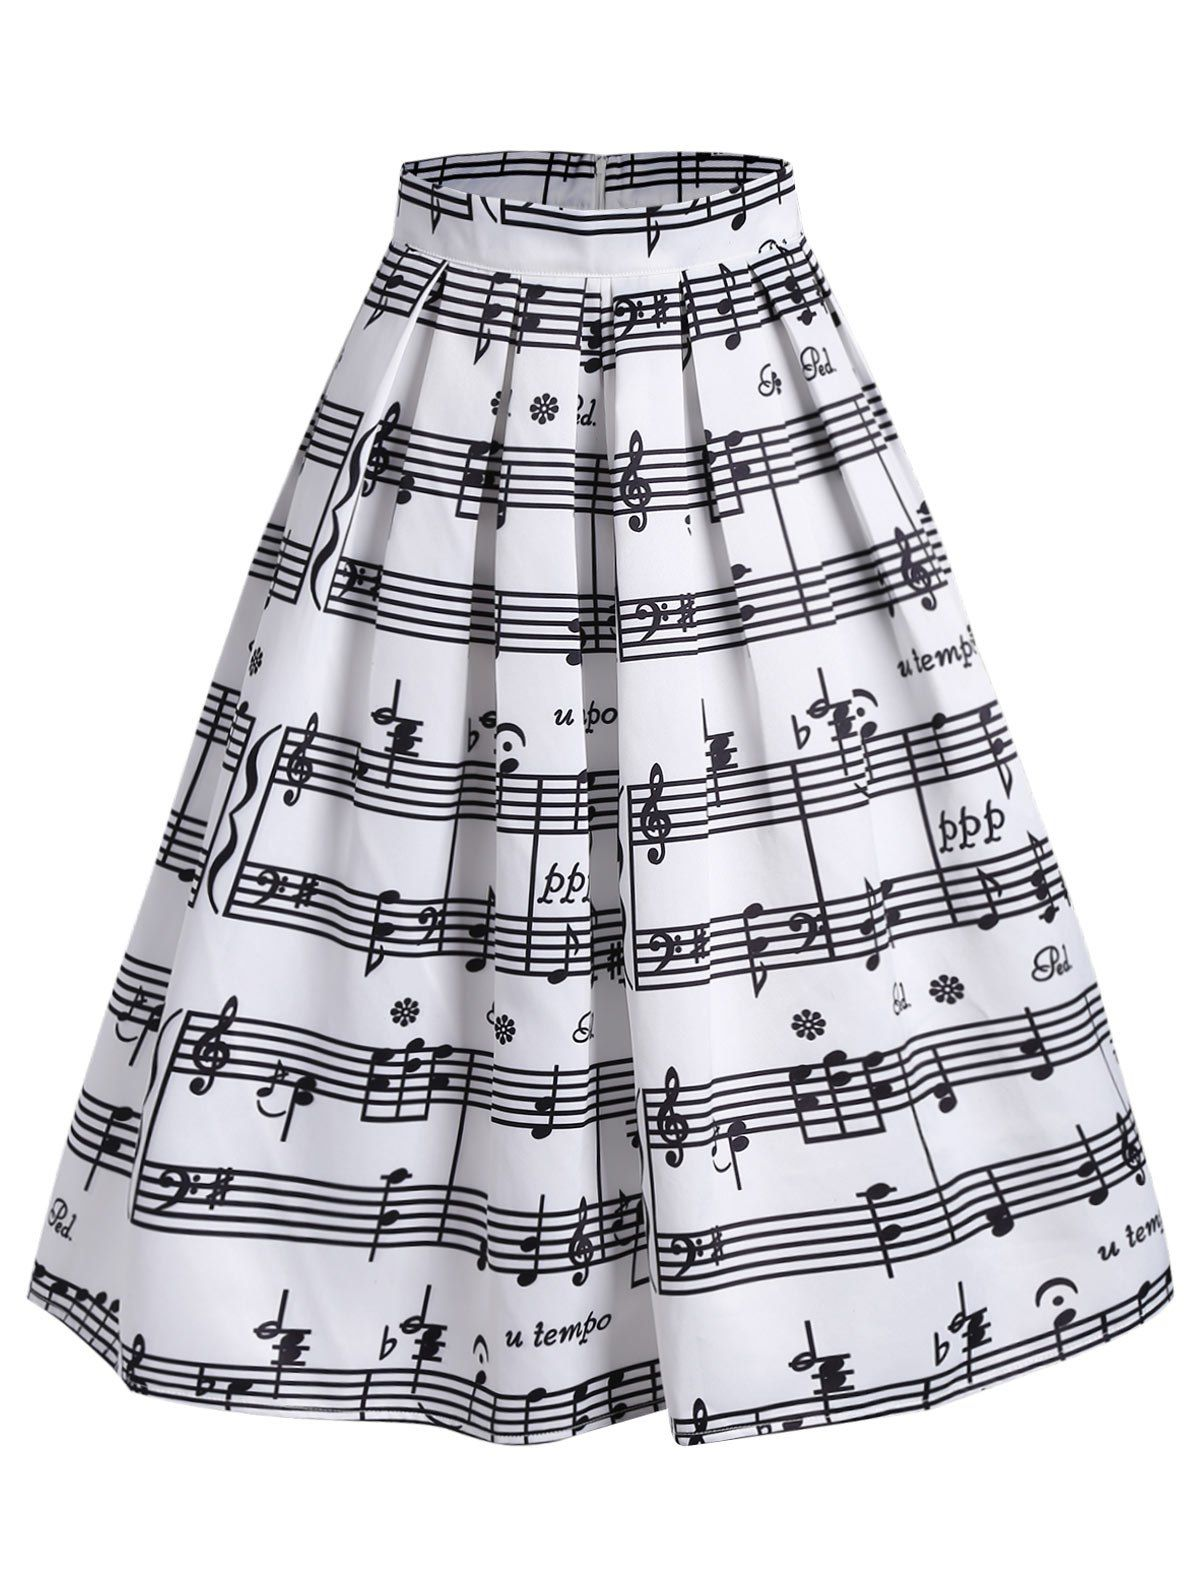 19235e02f7 Music Notes High Waist Midi Skirt in 2019 | Primary singing time ...